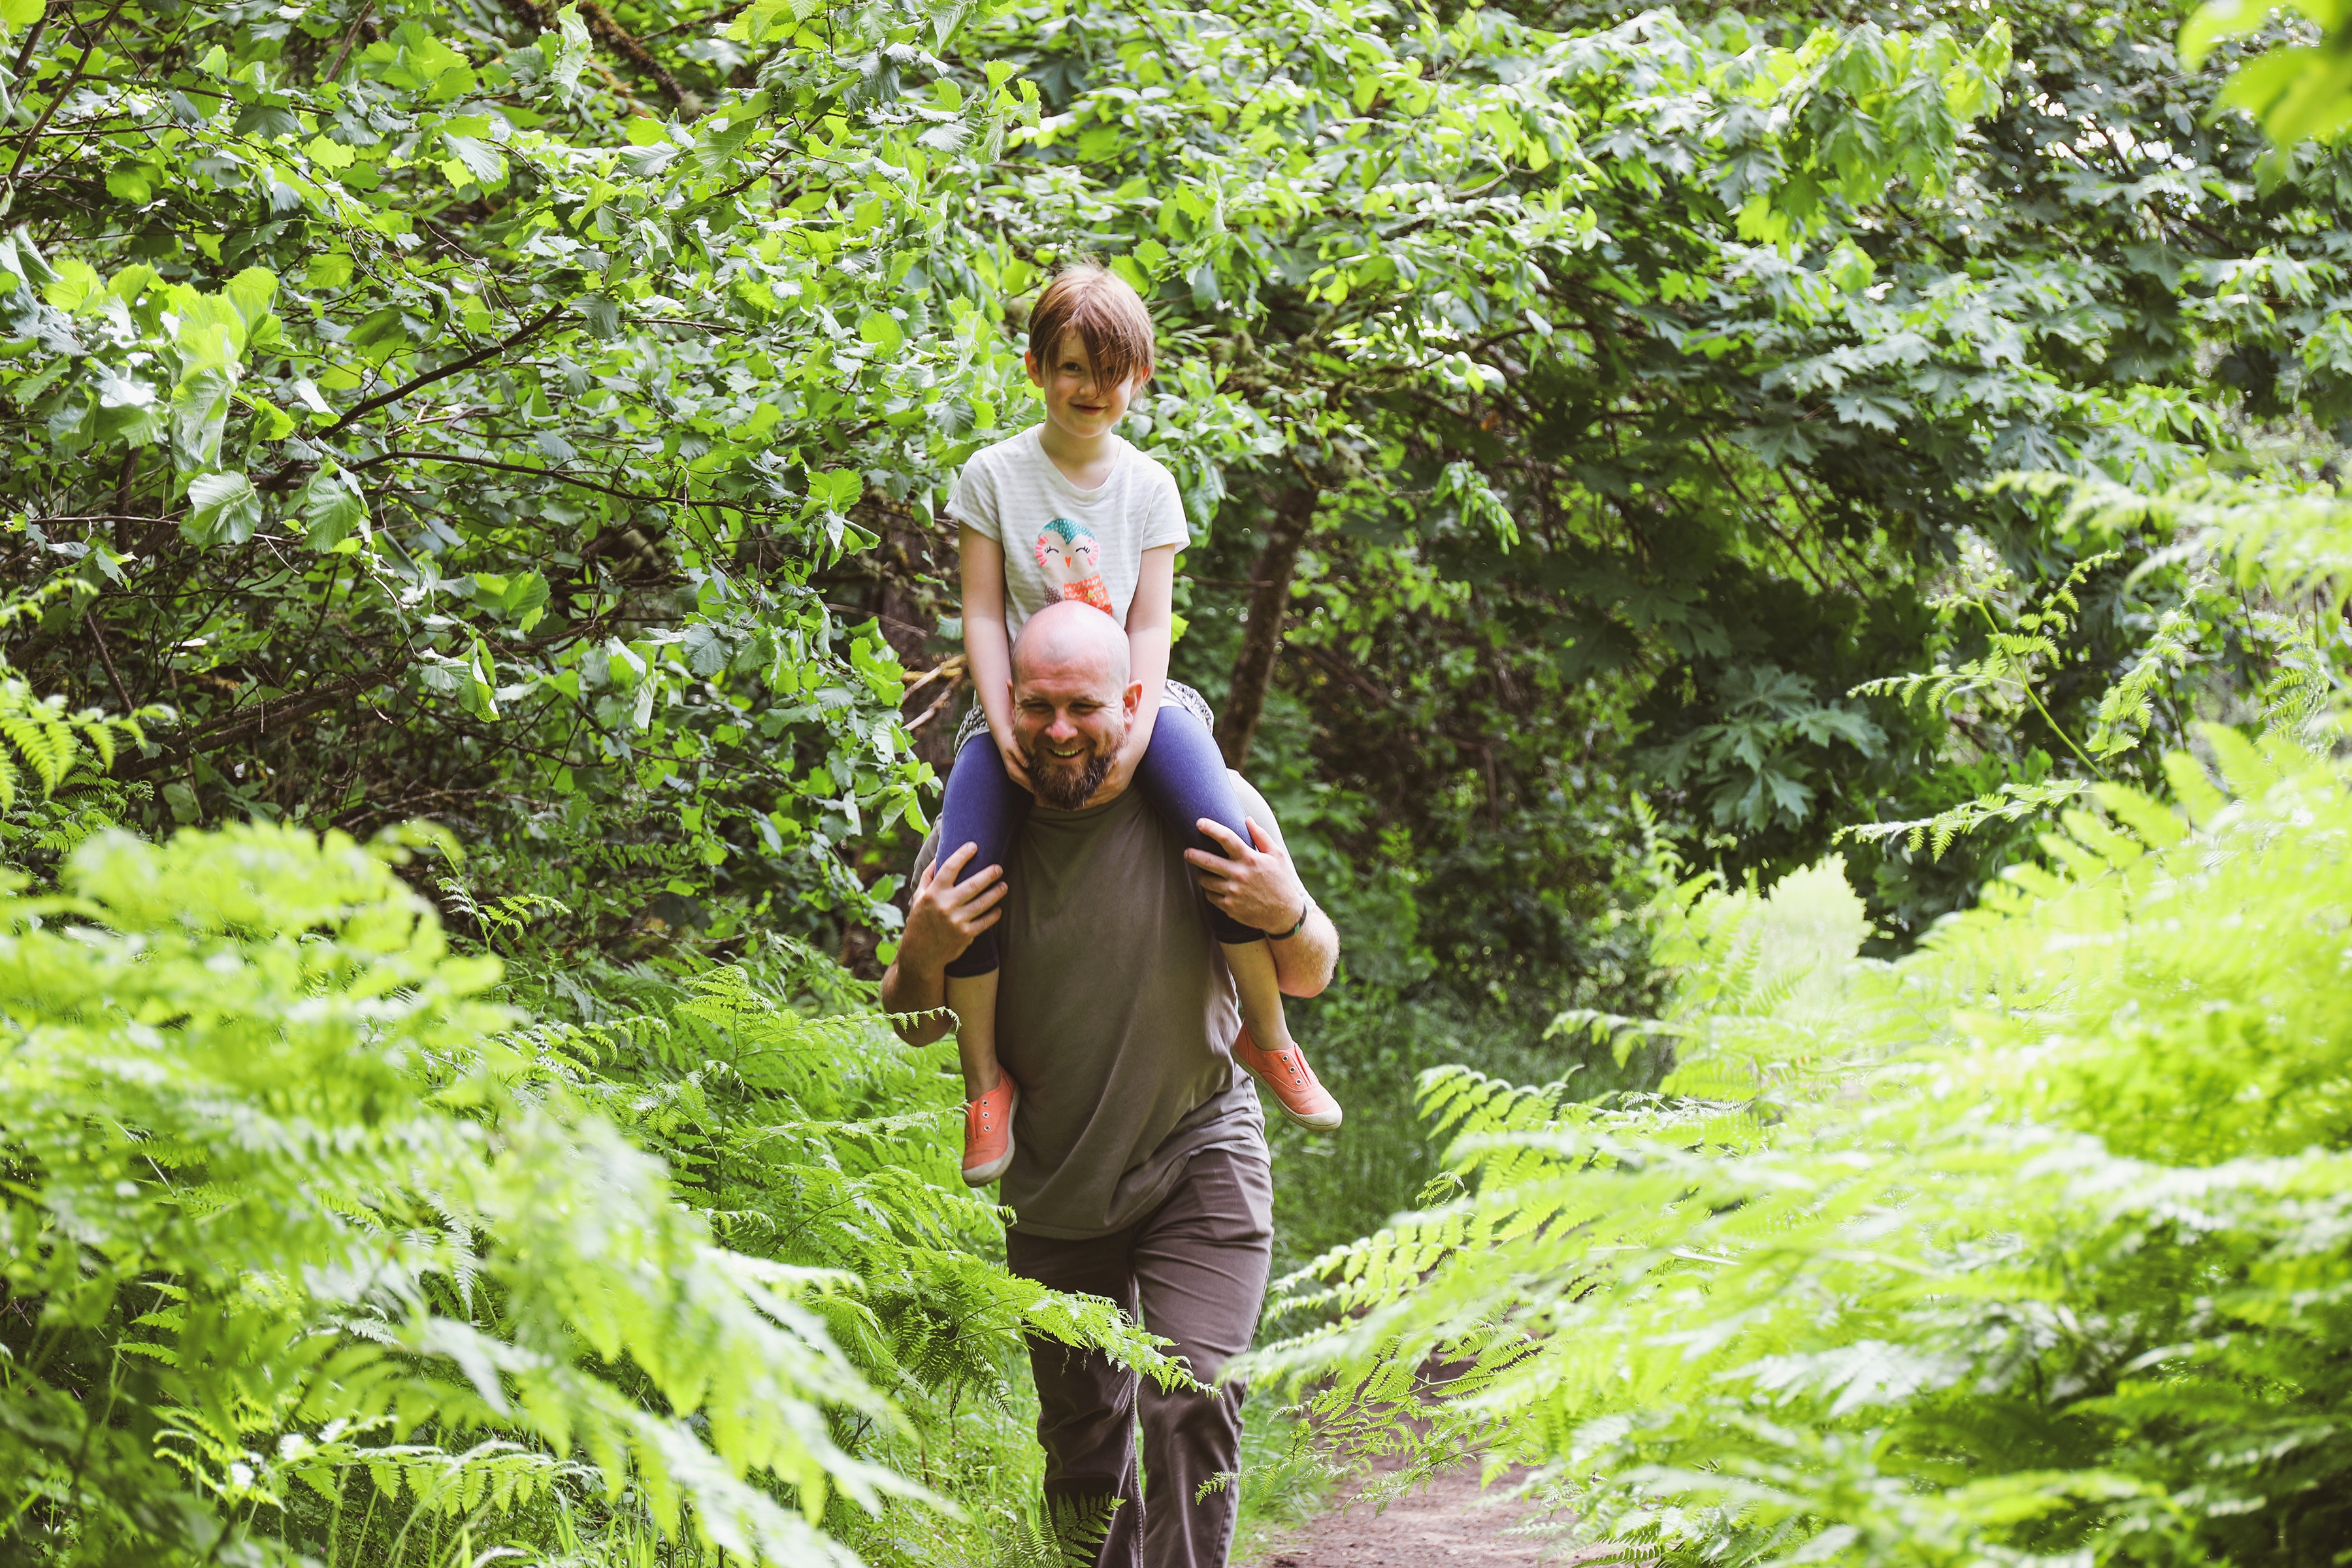 Girl sitting on father's shoulders walking through forest trails, hiking